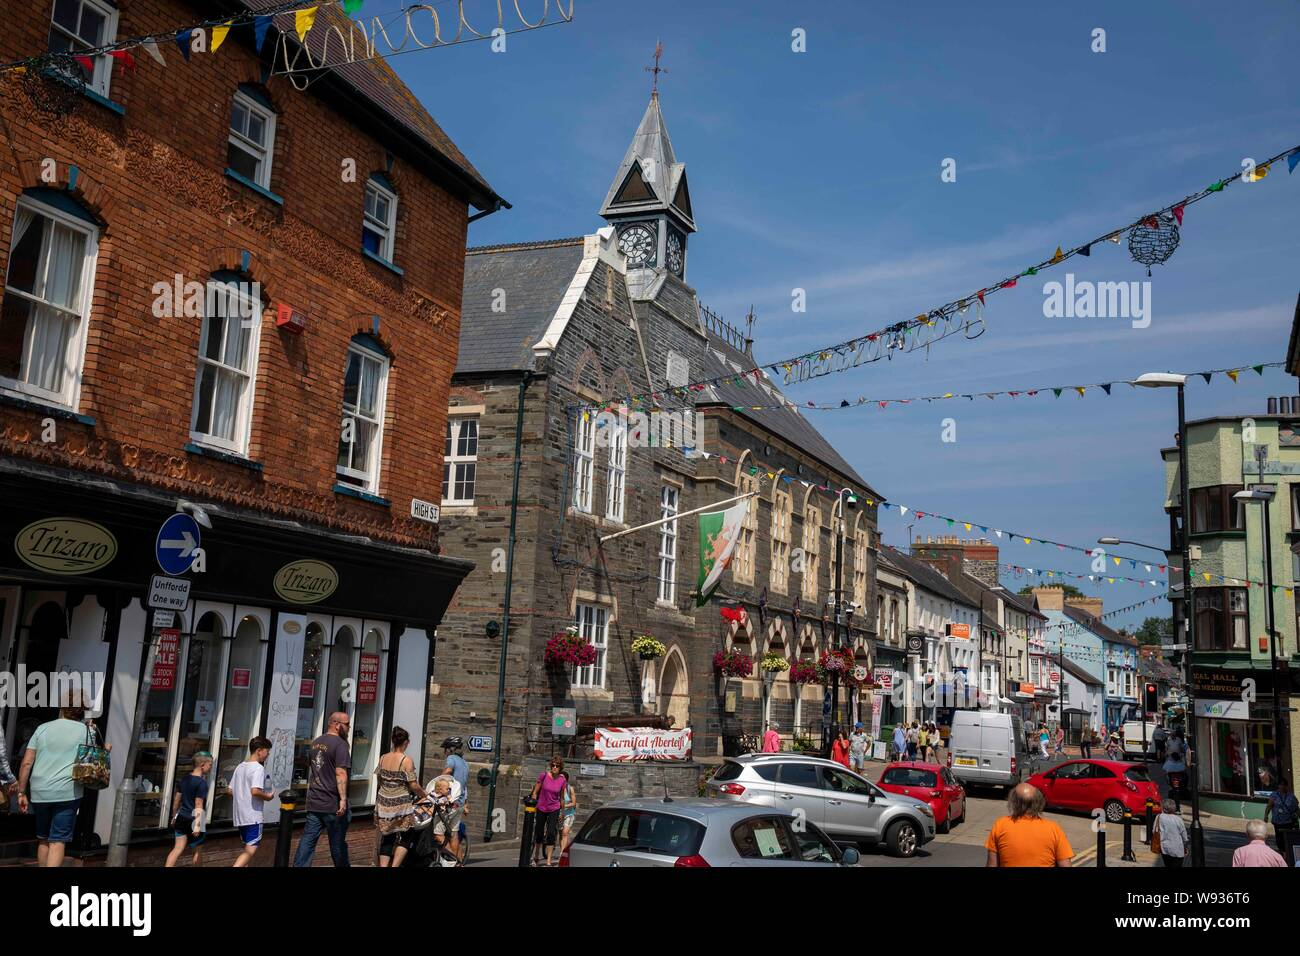 The Town Hall and high street in the centre of Cardigan, Ceredigion, August 2019. Stock Photo